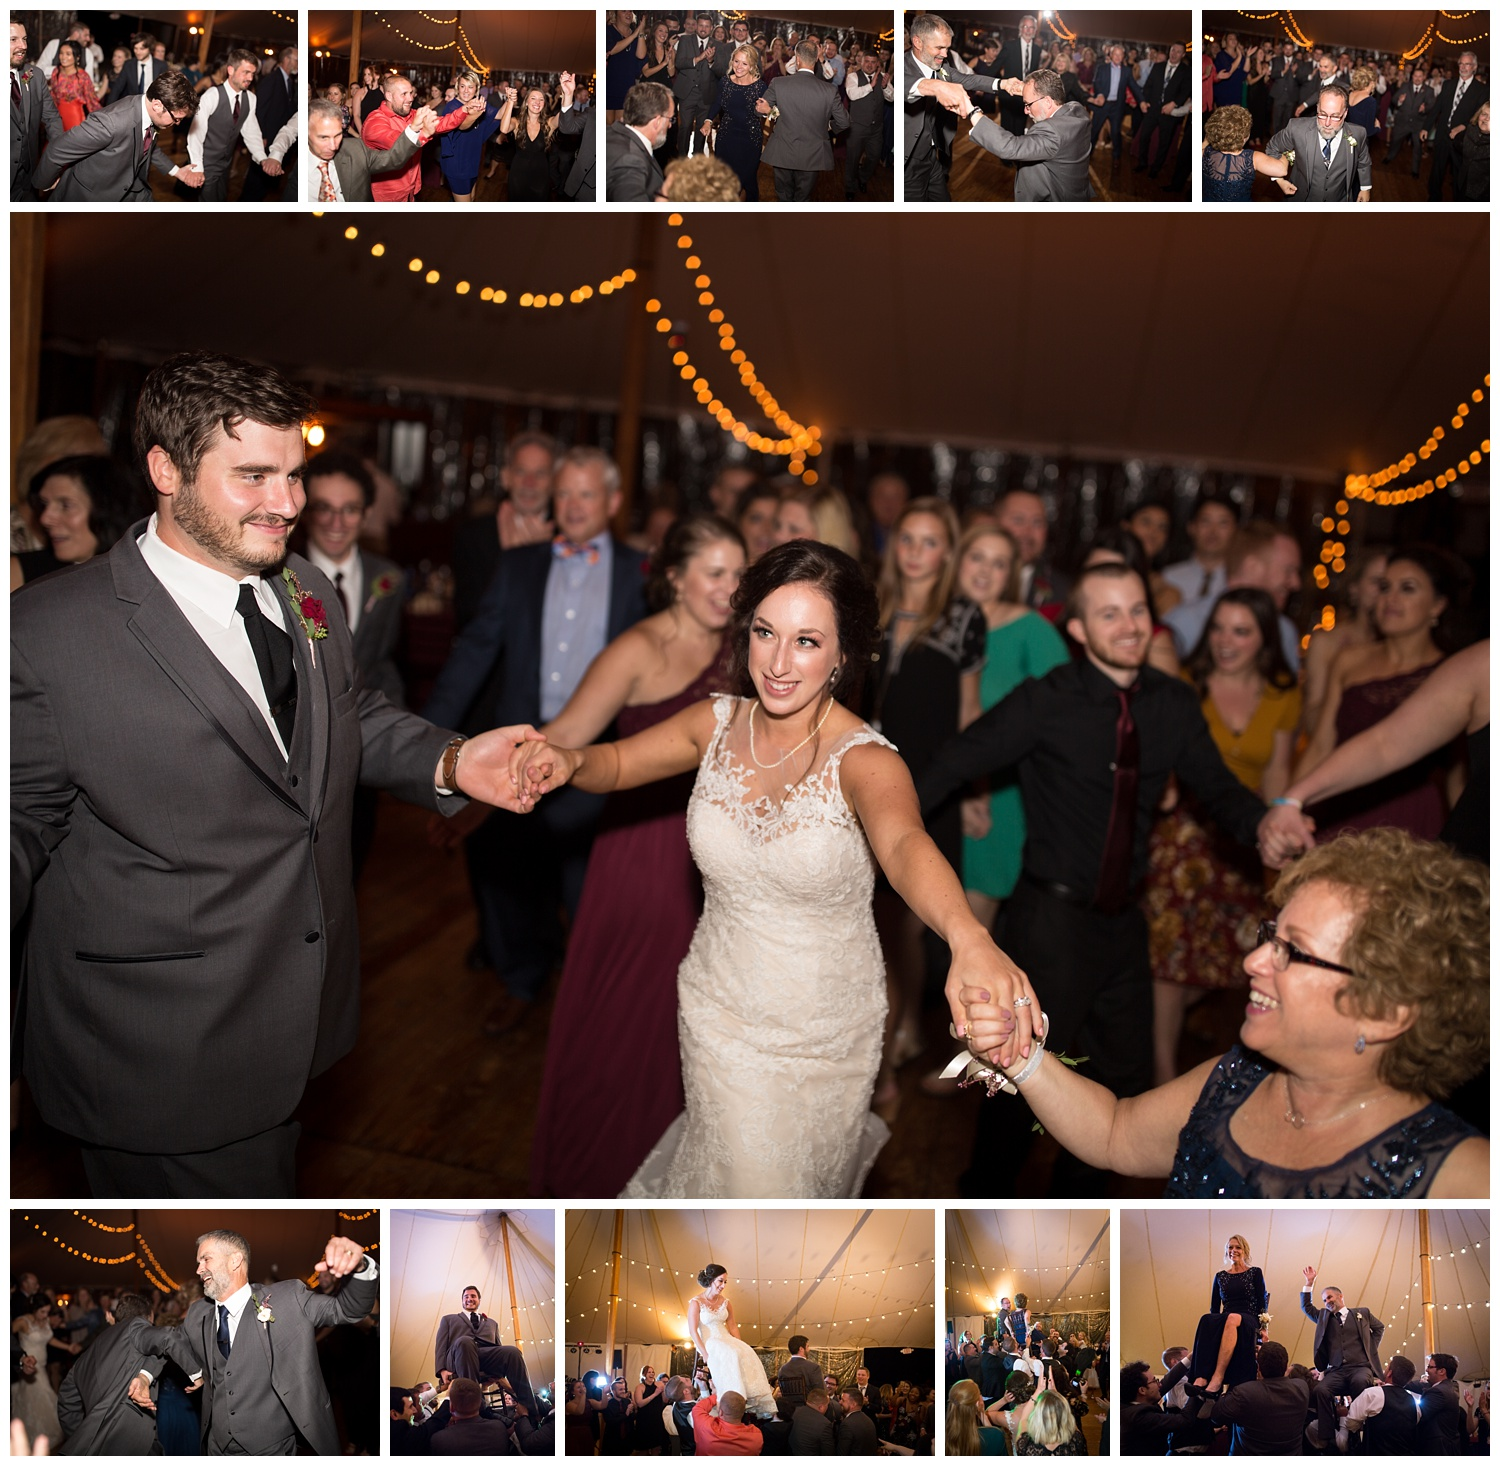 Ben and Becca Storrick Wedding at The Inn at Vint Hill Northern VA